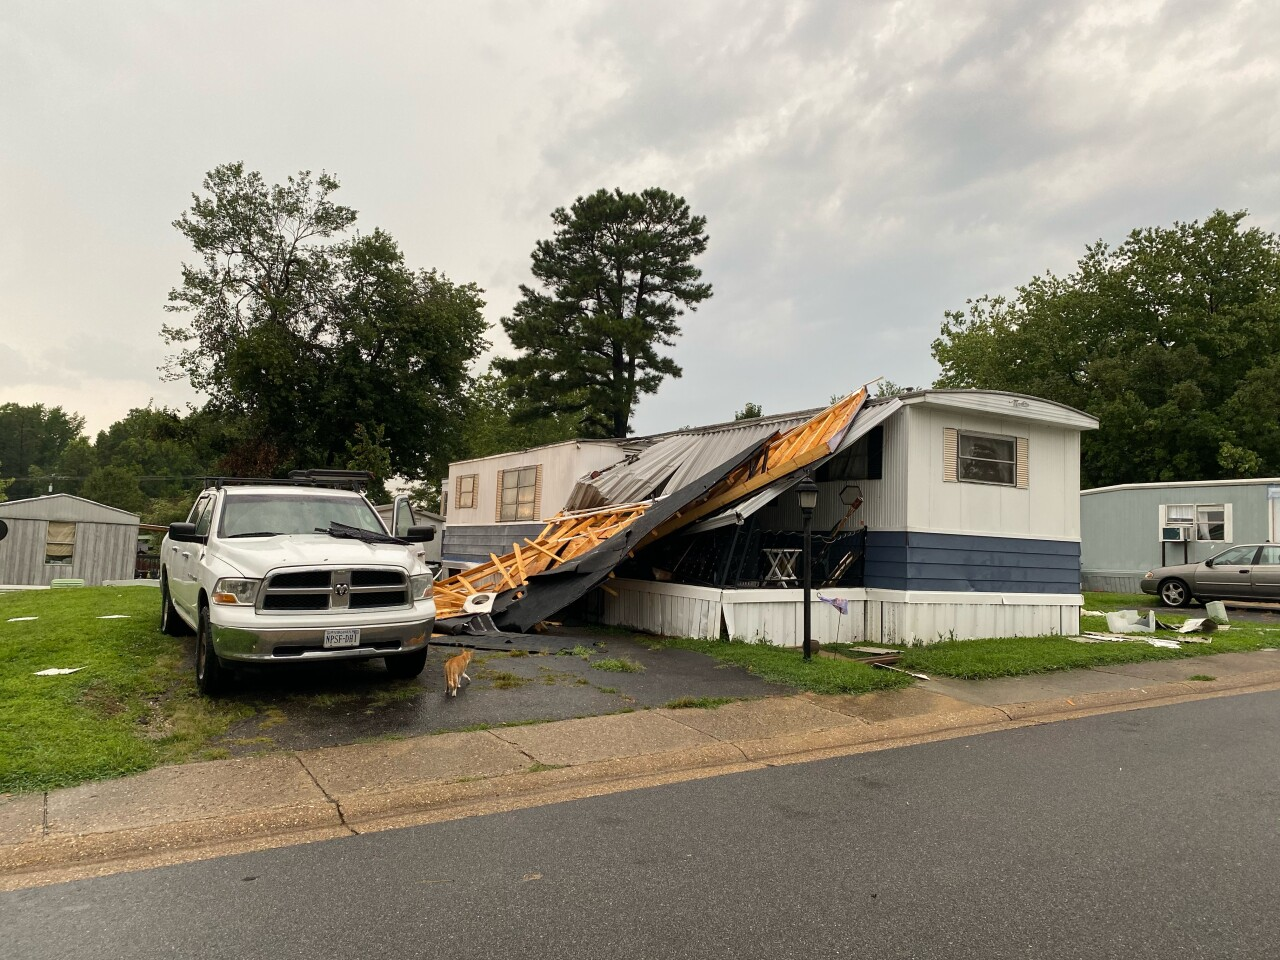 Mobile home in Chesterfield County loses roof